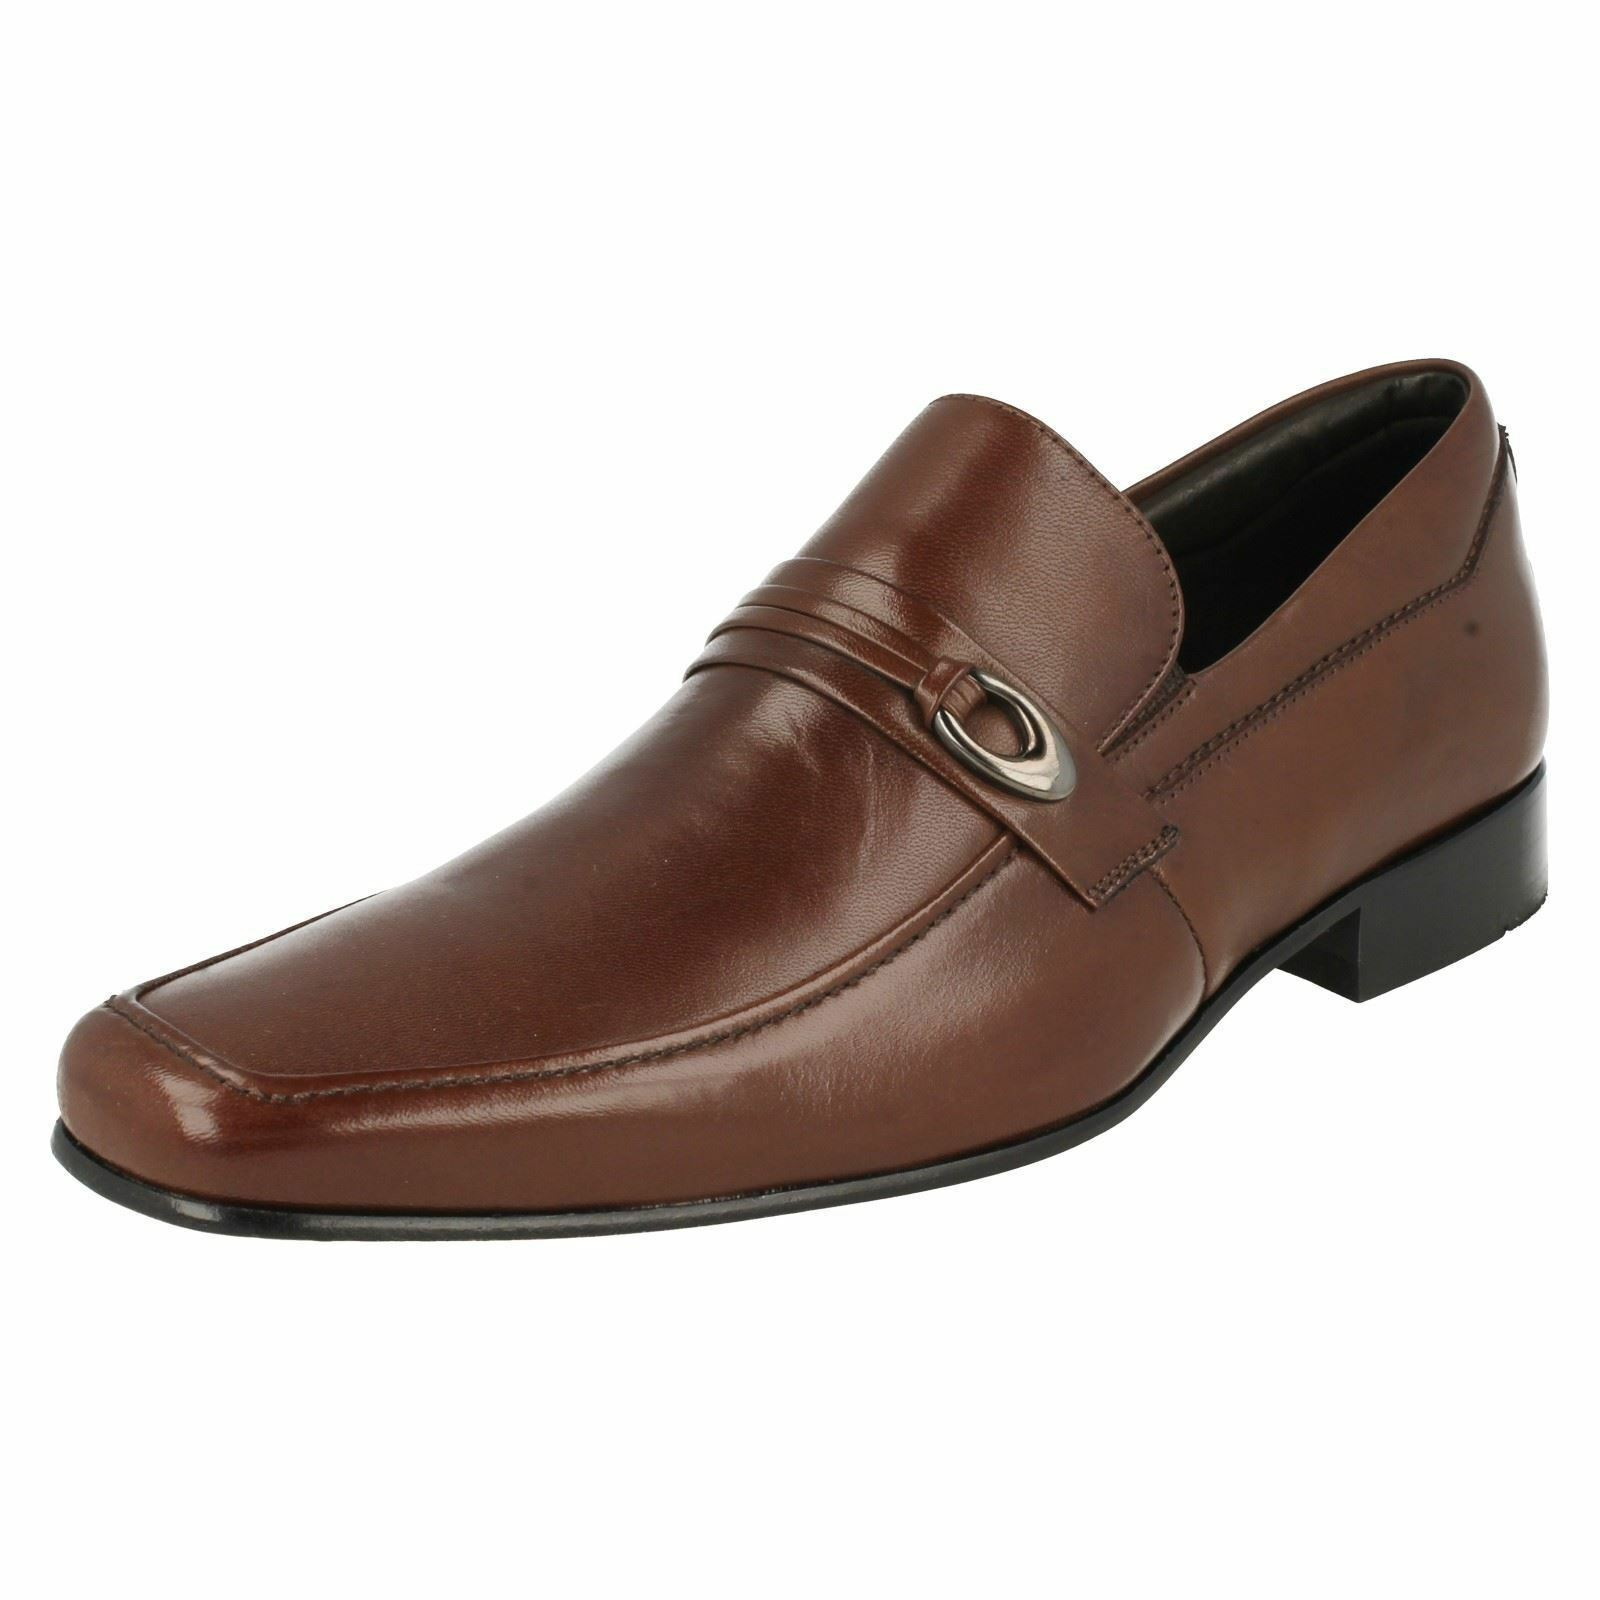 Da Uomo Anatomica PRIME goiania 2 Oro Brown Scarpe In Pelle Smart Mocassini Scarpe Brown 92de06